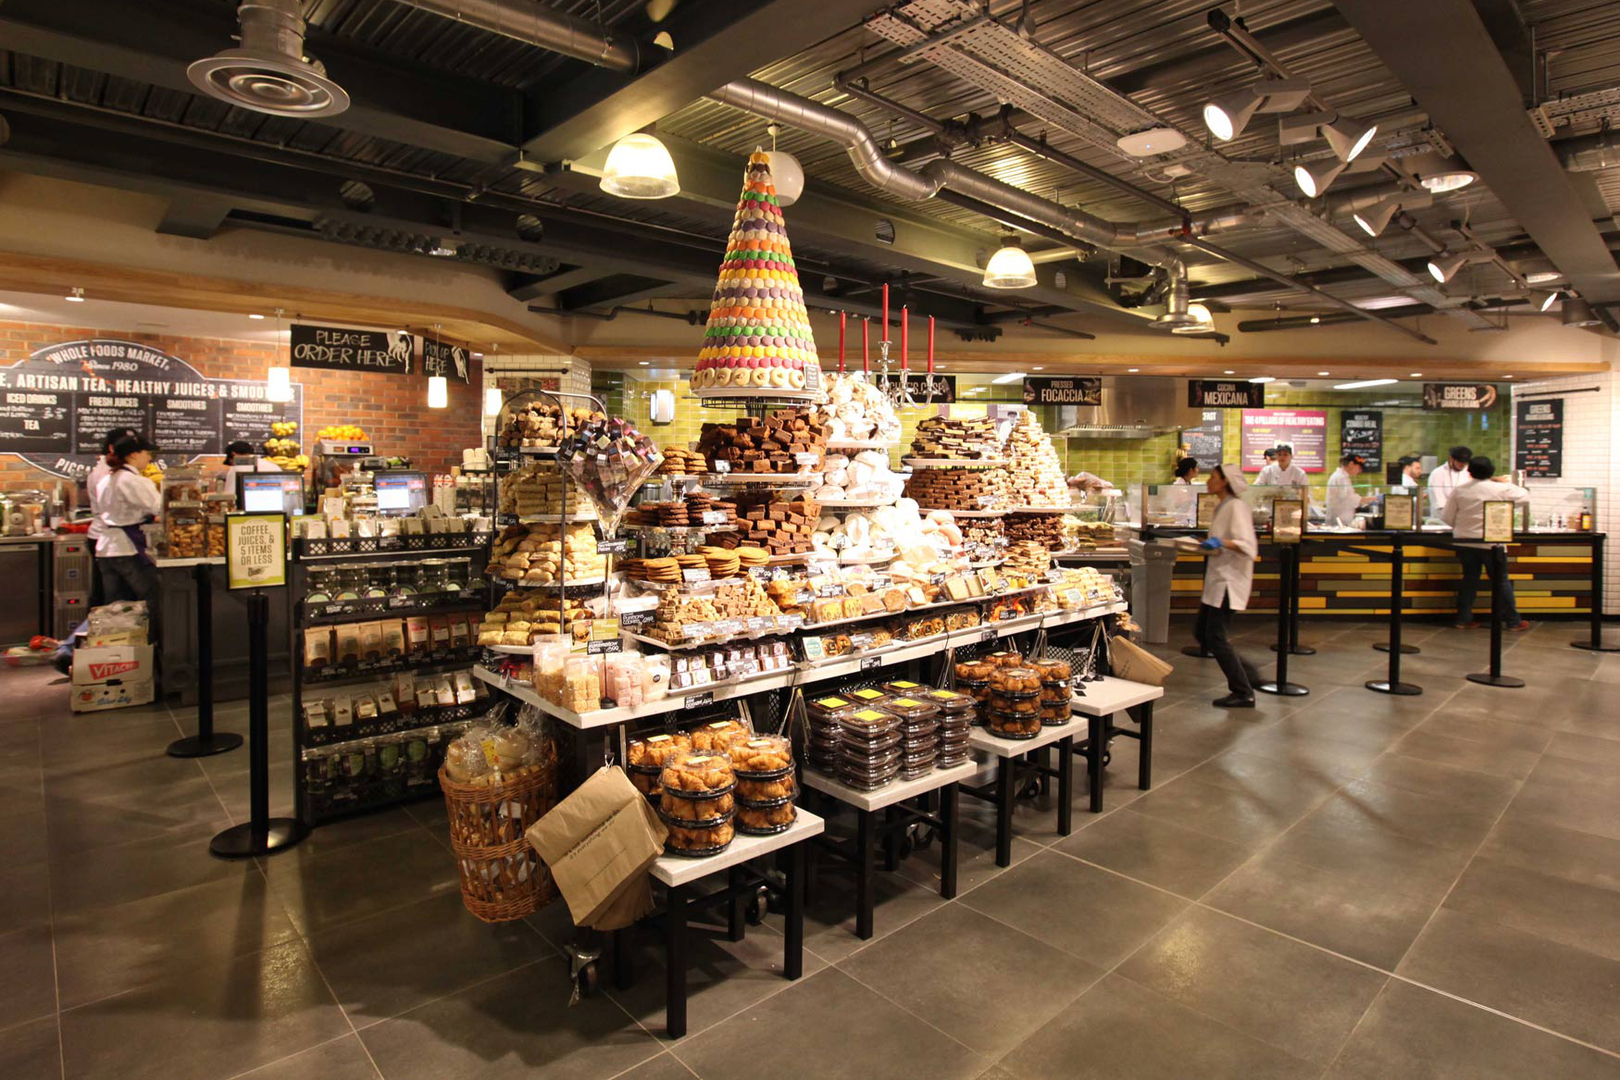 wfm-piccadilly-bakery-01